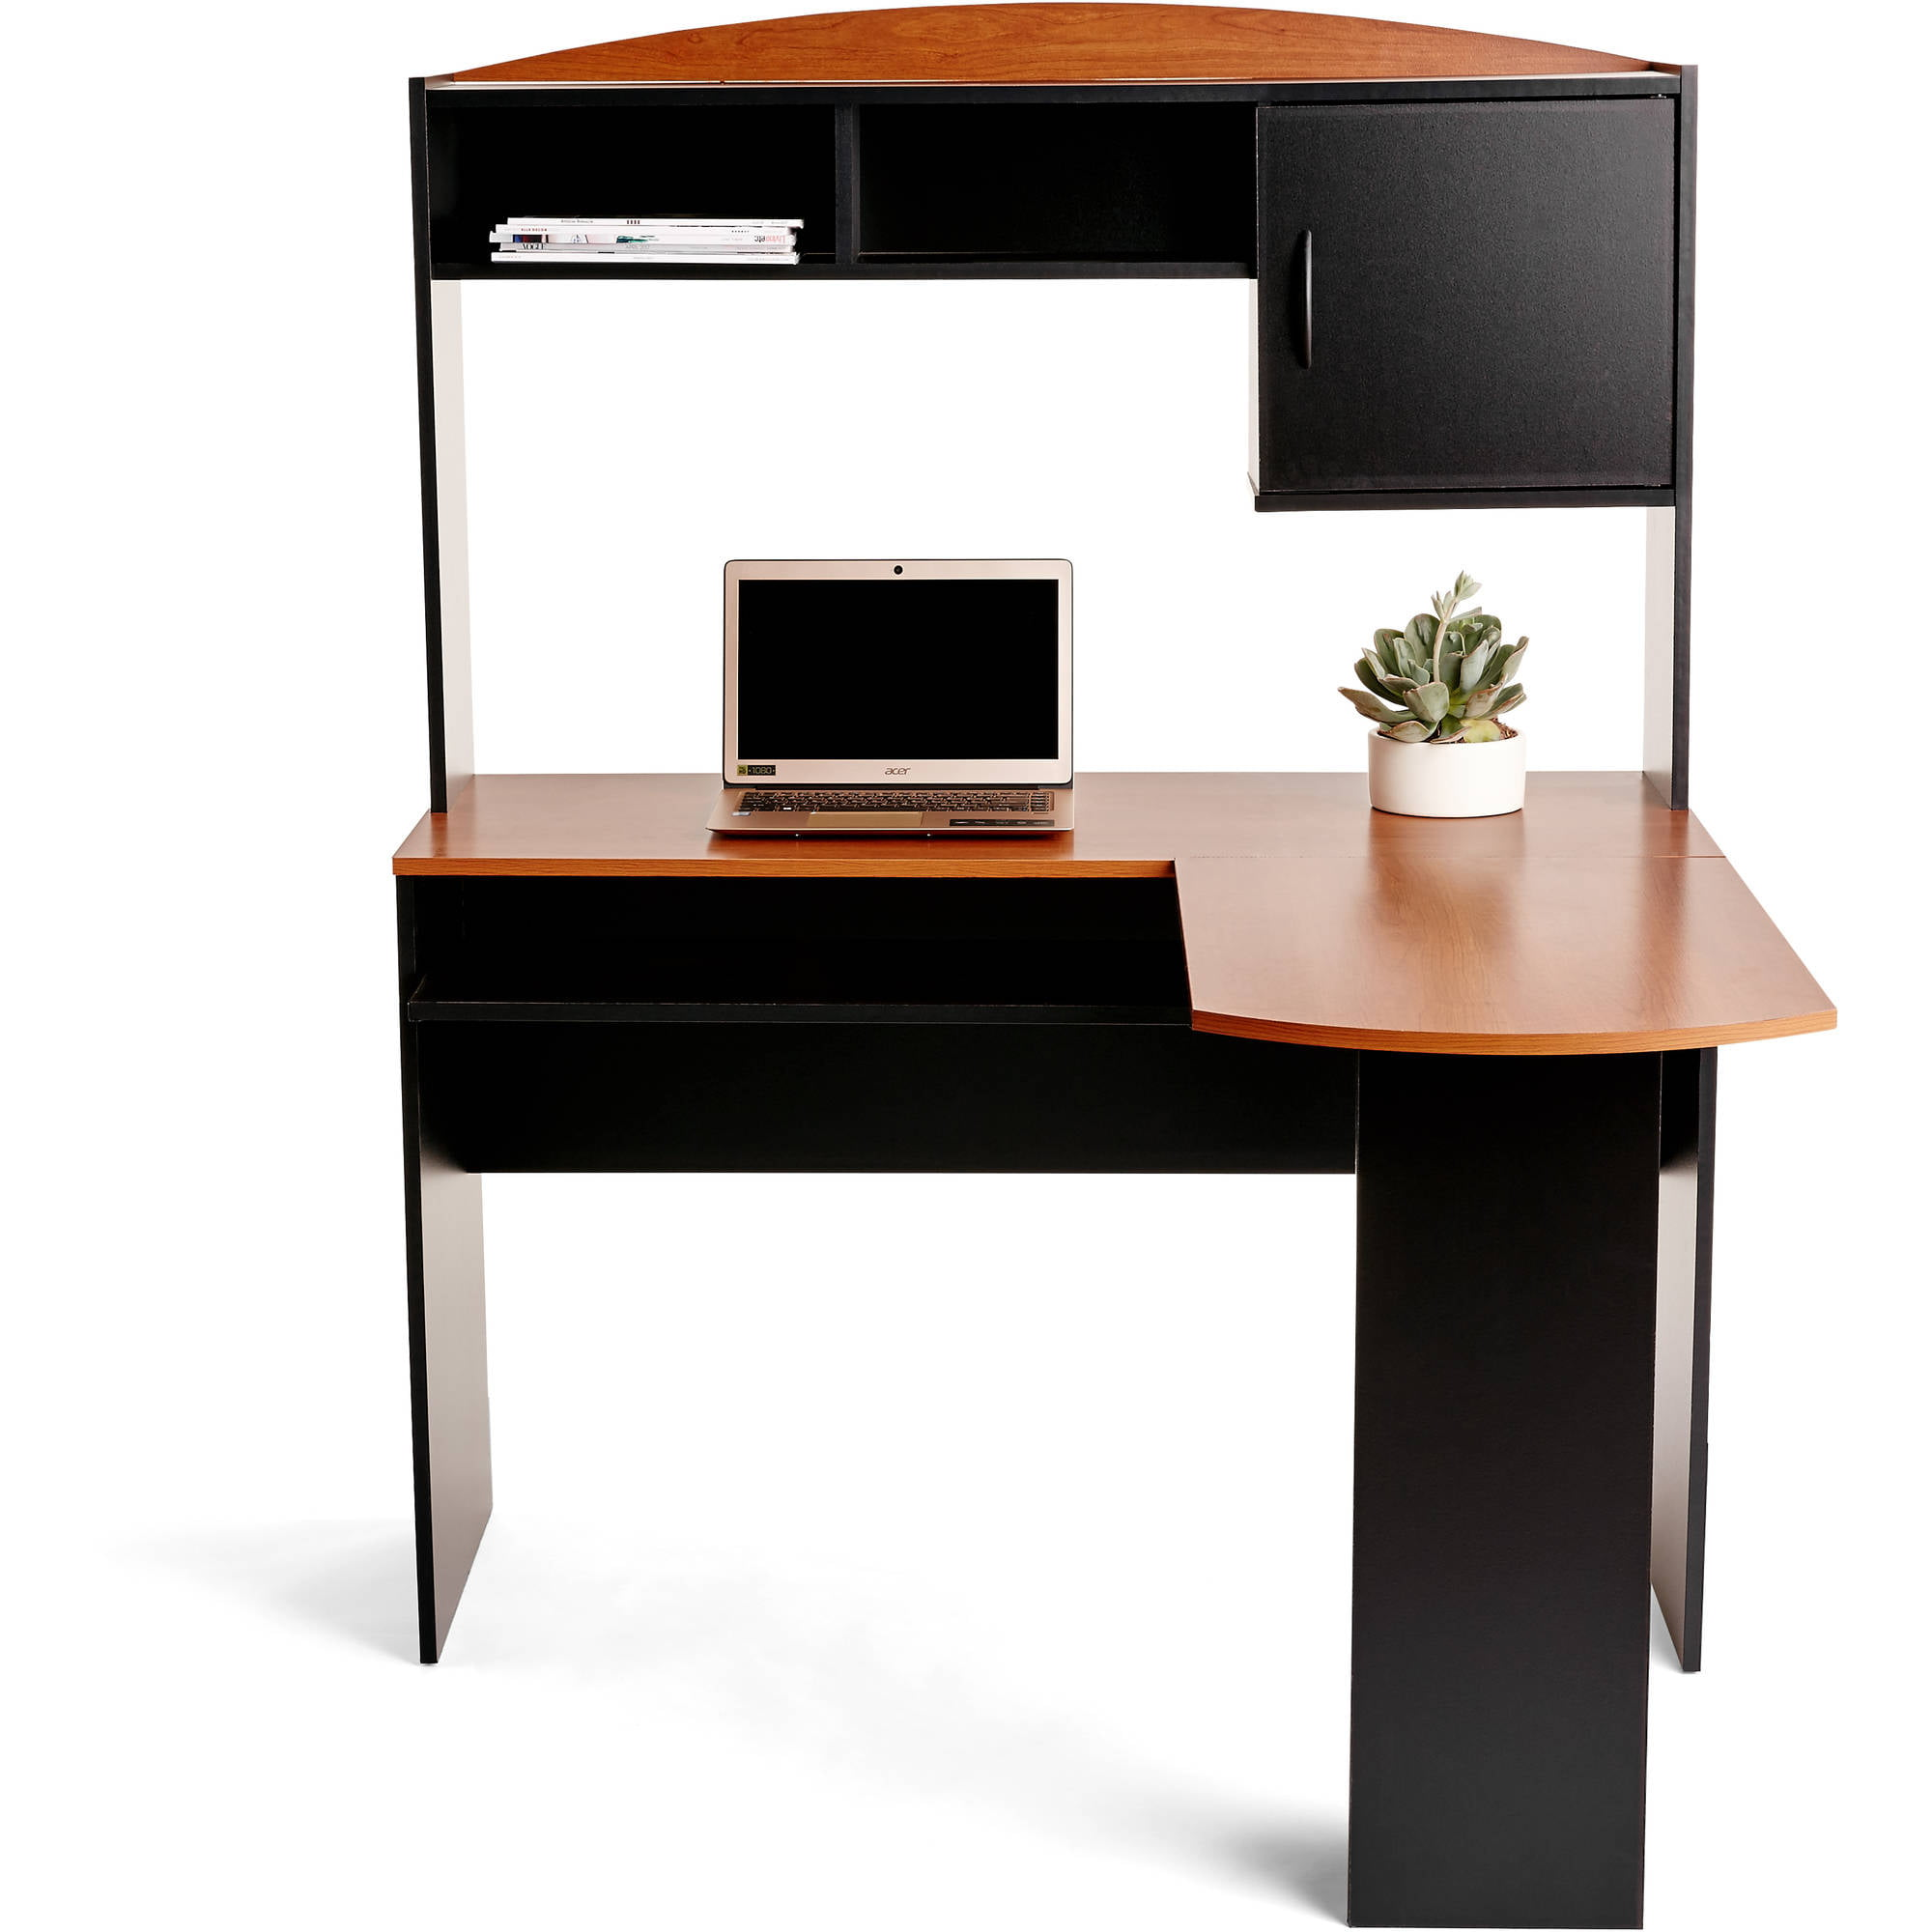 Mainstays L-Shaped Desk with Hutch, Multiple Finishes - Walmart.com